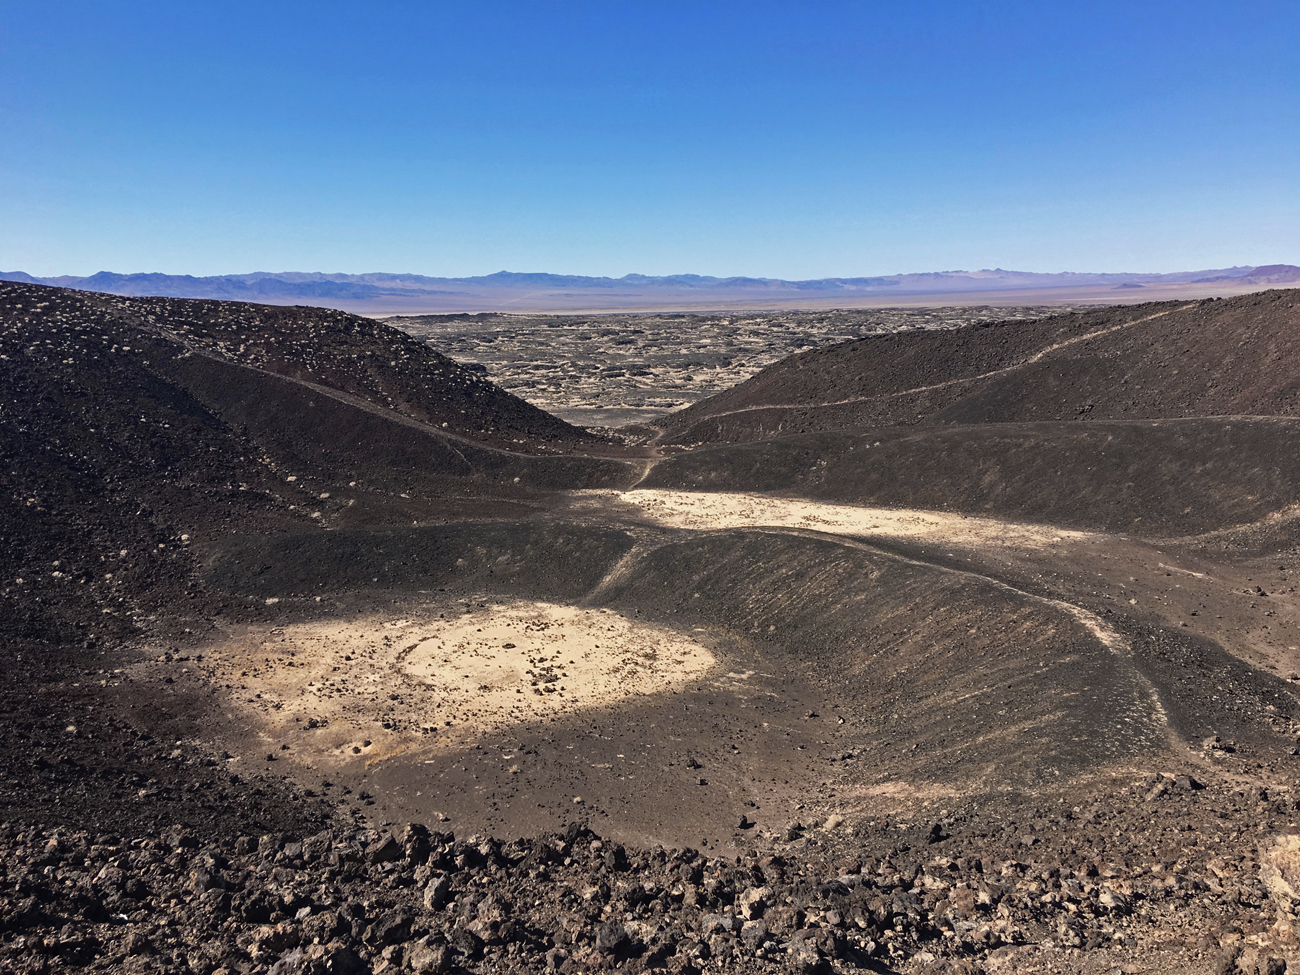 Looking down into the crater from the rim